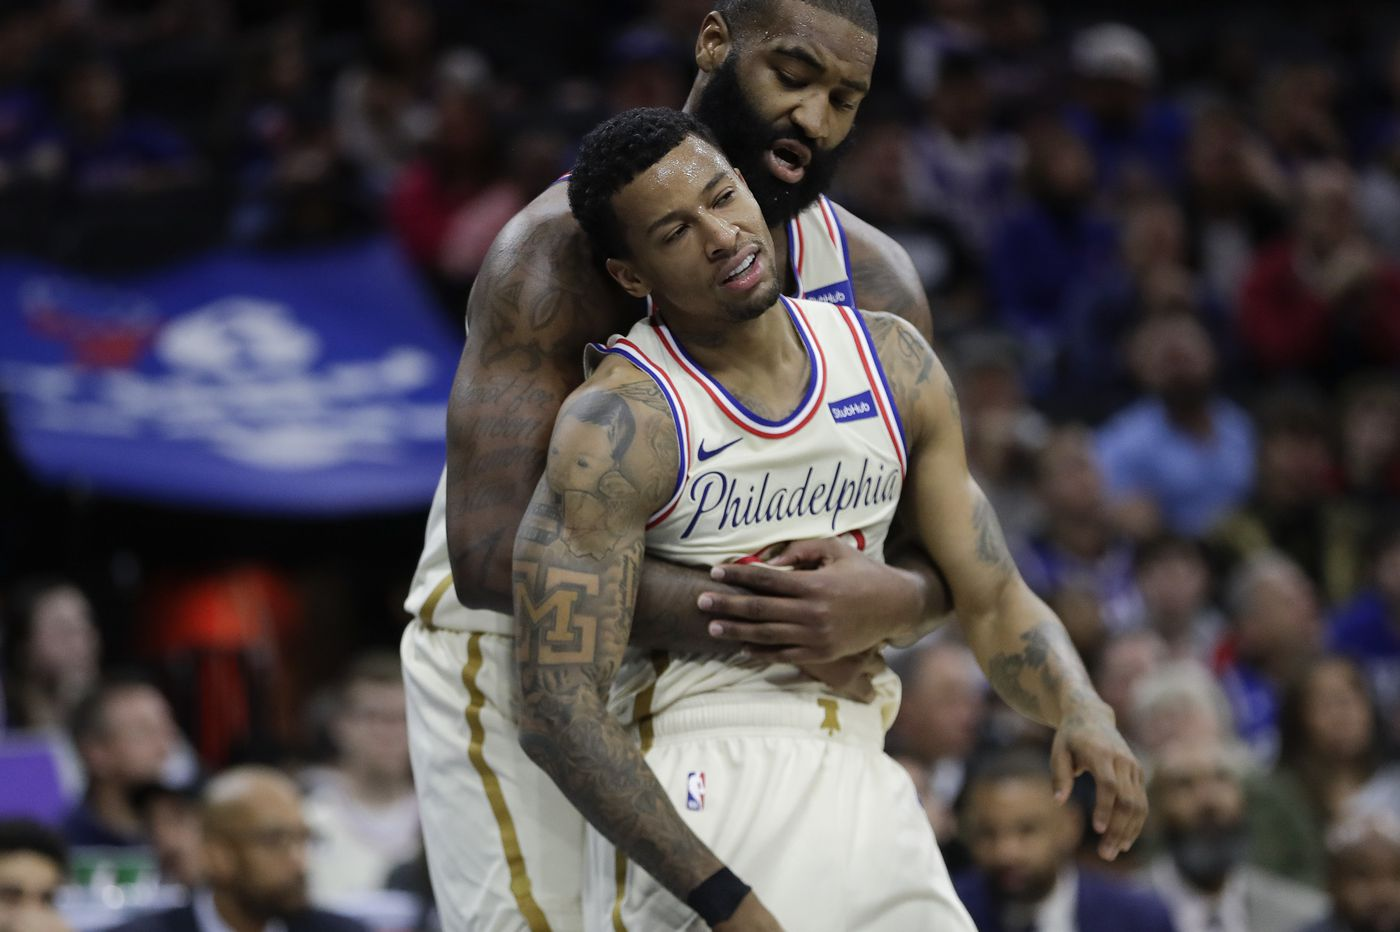 Sixers' Trey Burke's father says on Instagram he wants his son traded; Trey says comments 'don't reflect how I feel'